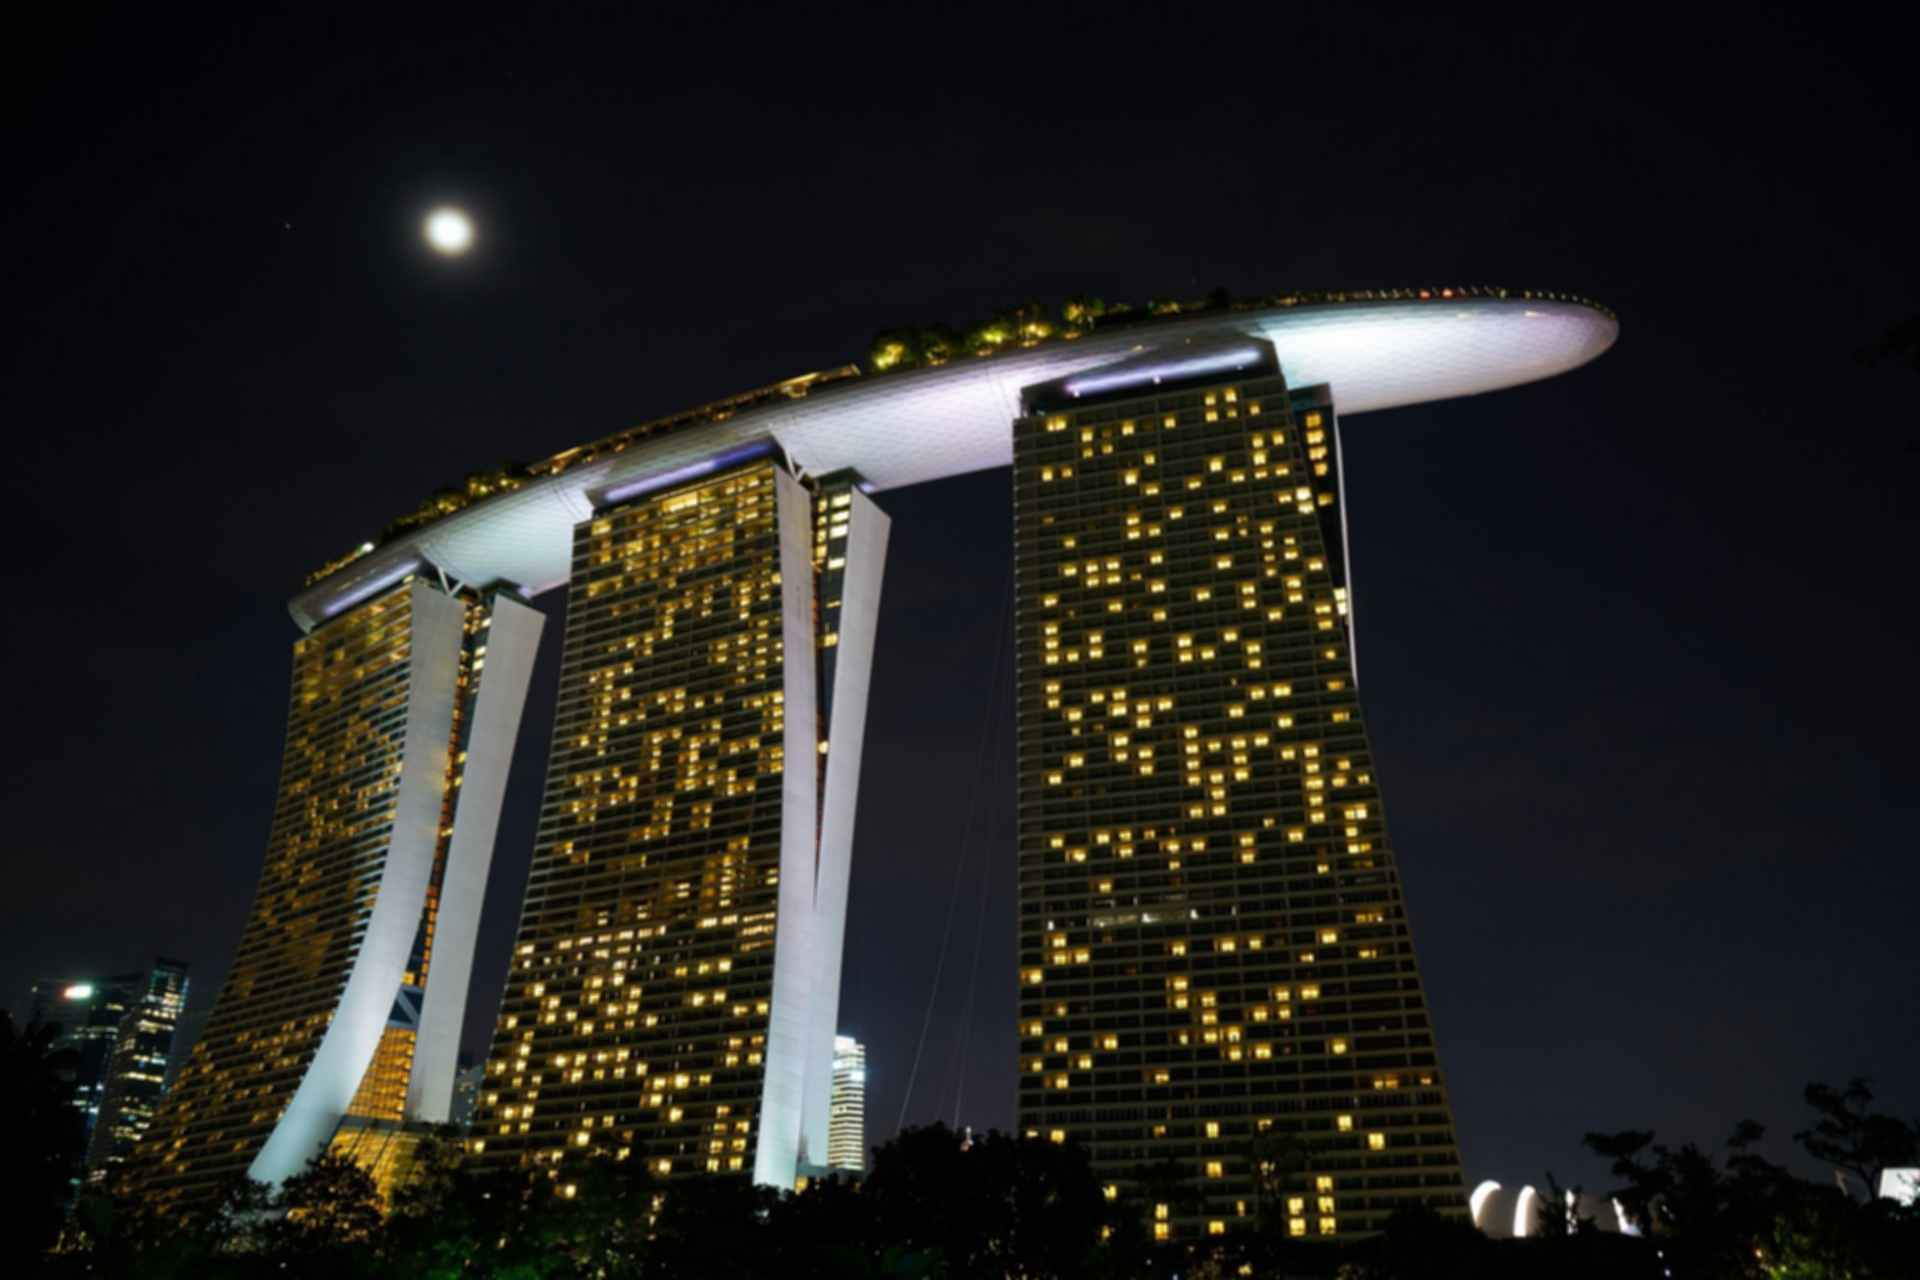 Marina Bay Sands - at Night